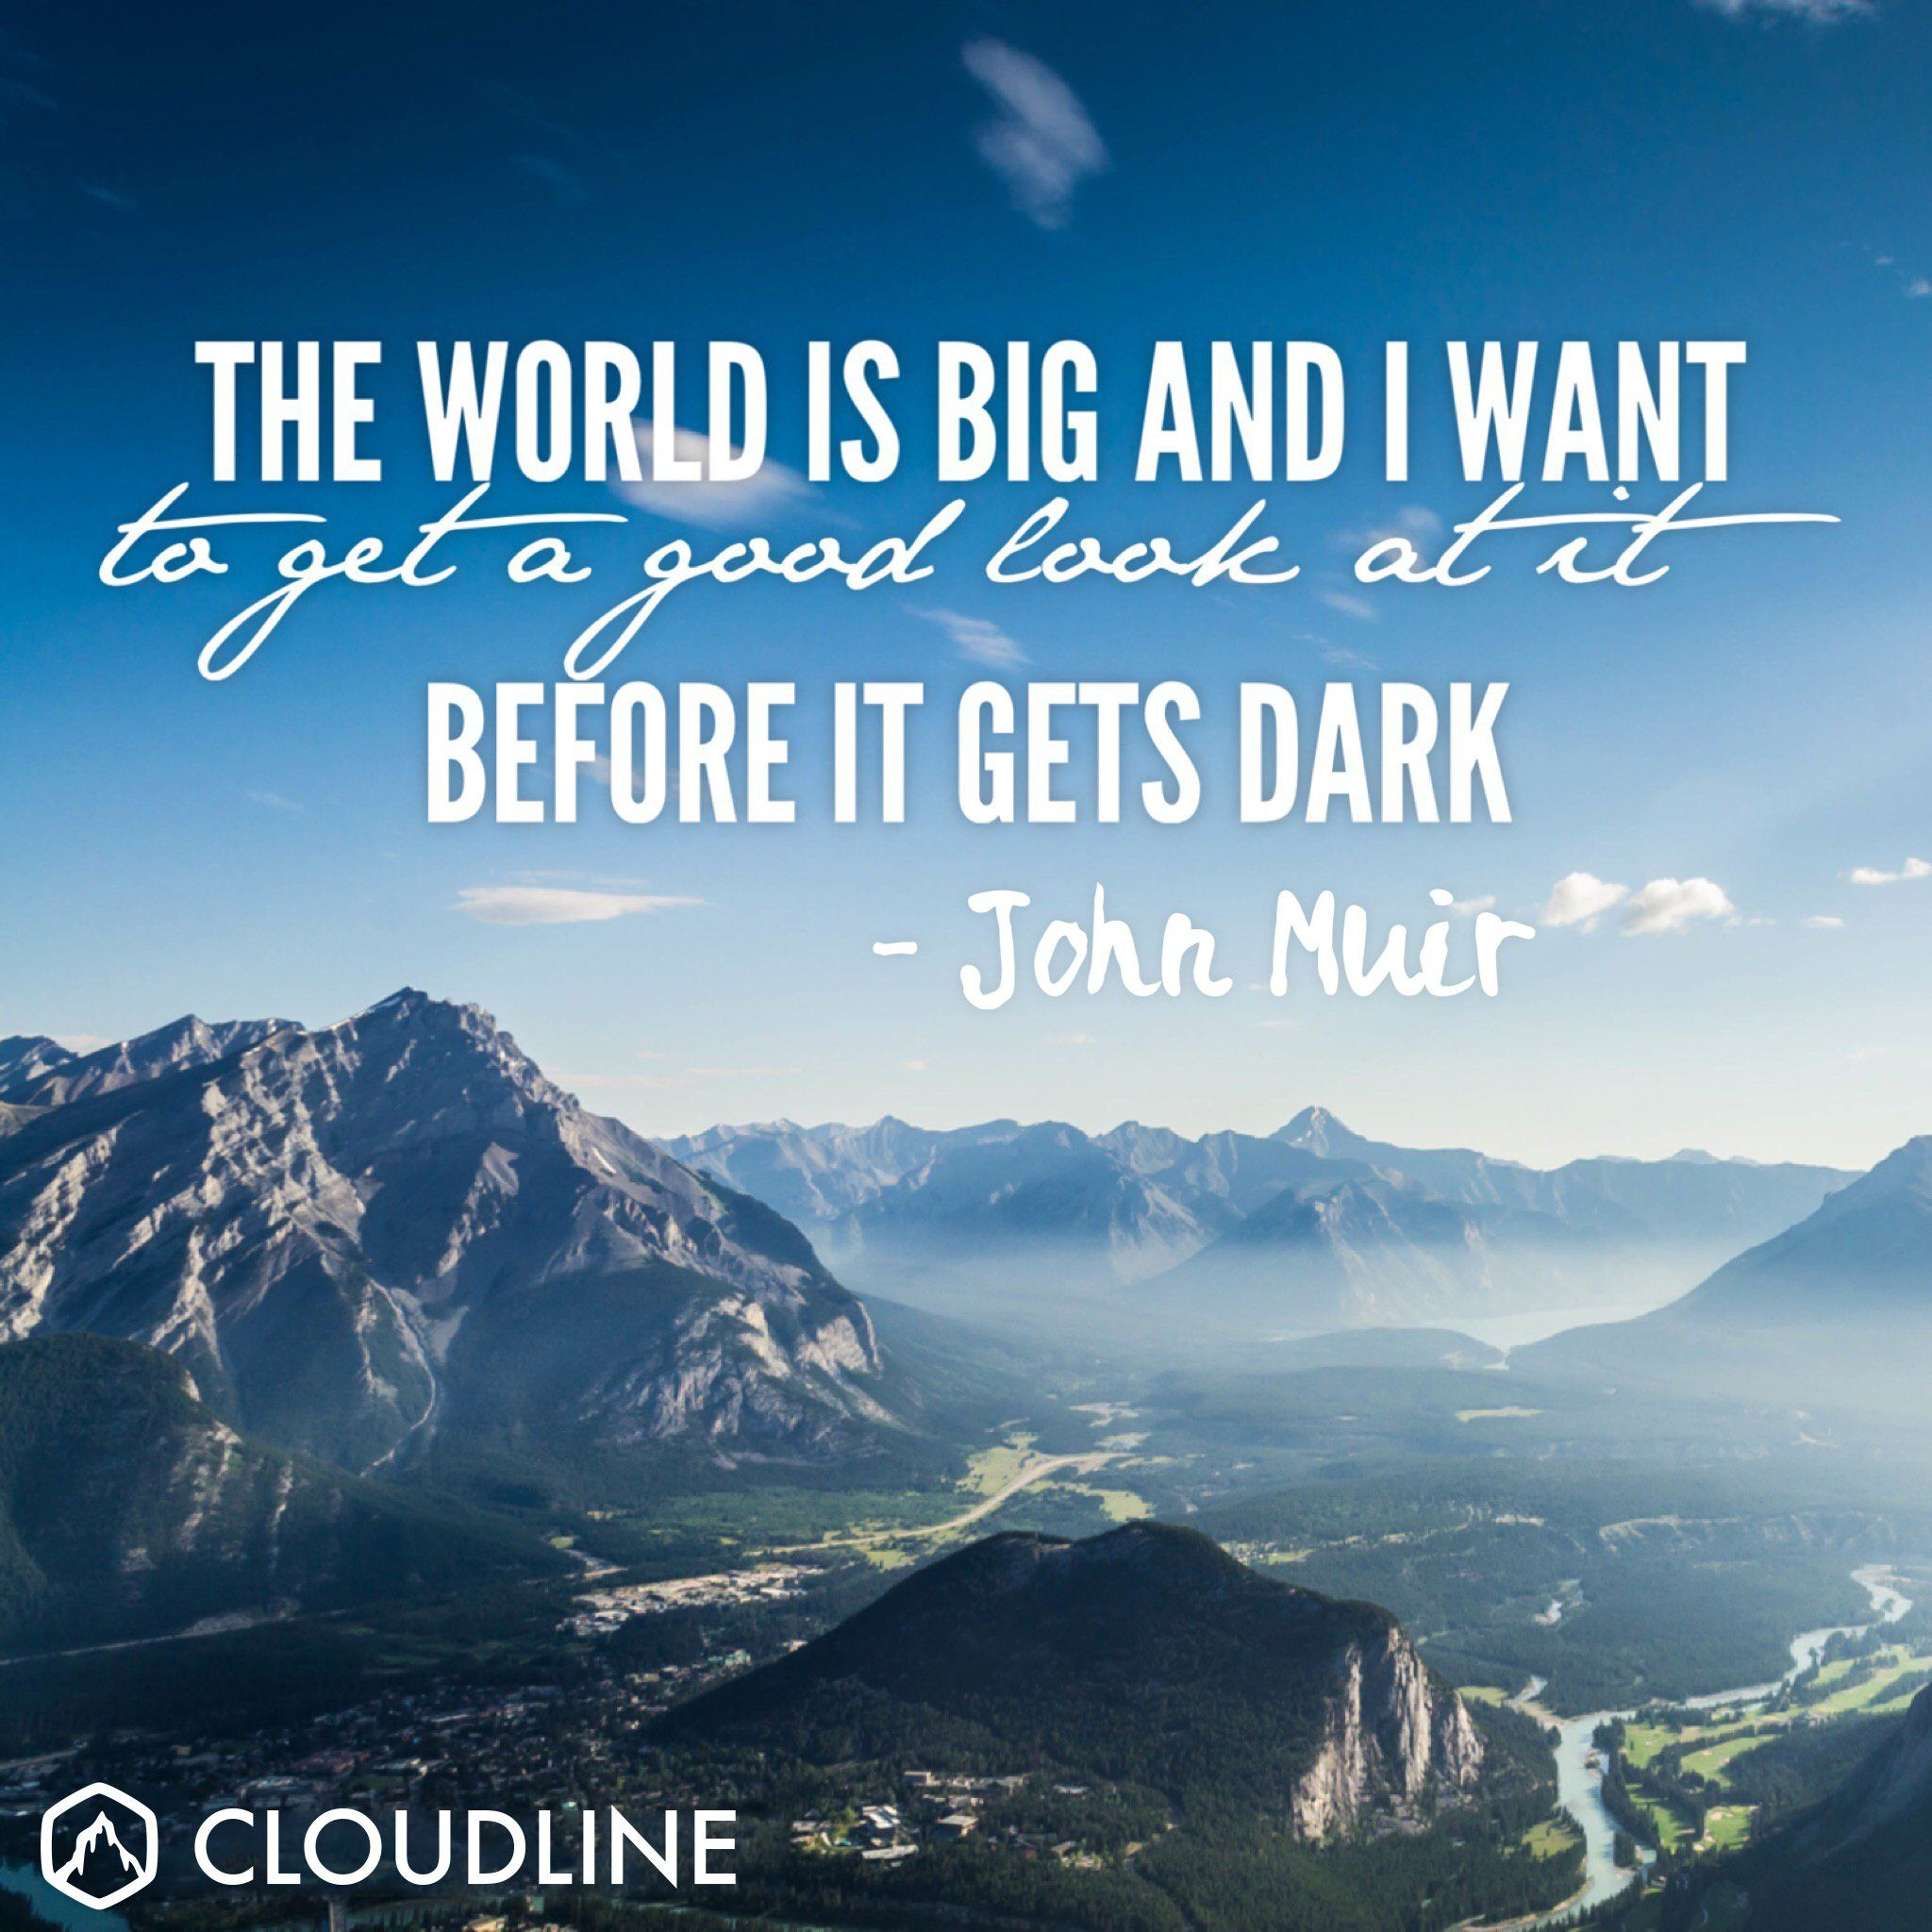 12 Inspiring John Muir Quotes For Hikers And Backpackers John Muir Quotes Hiking Quotes New Adventure Quotes